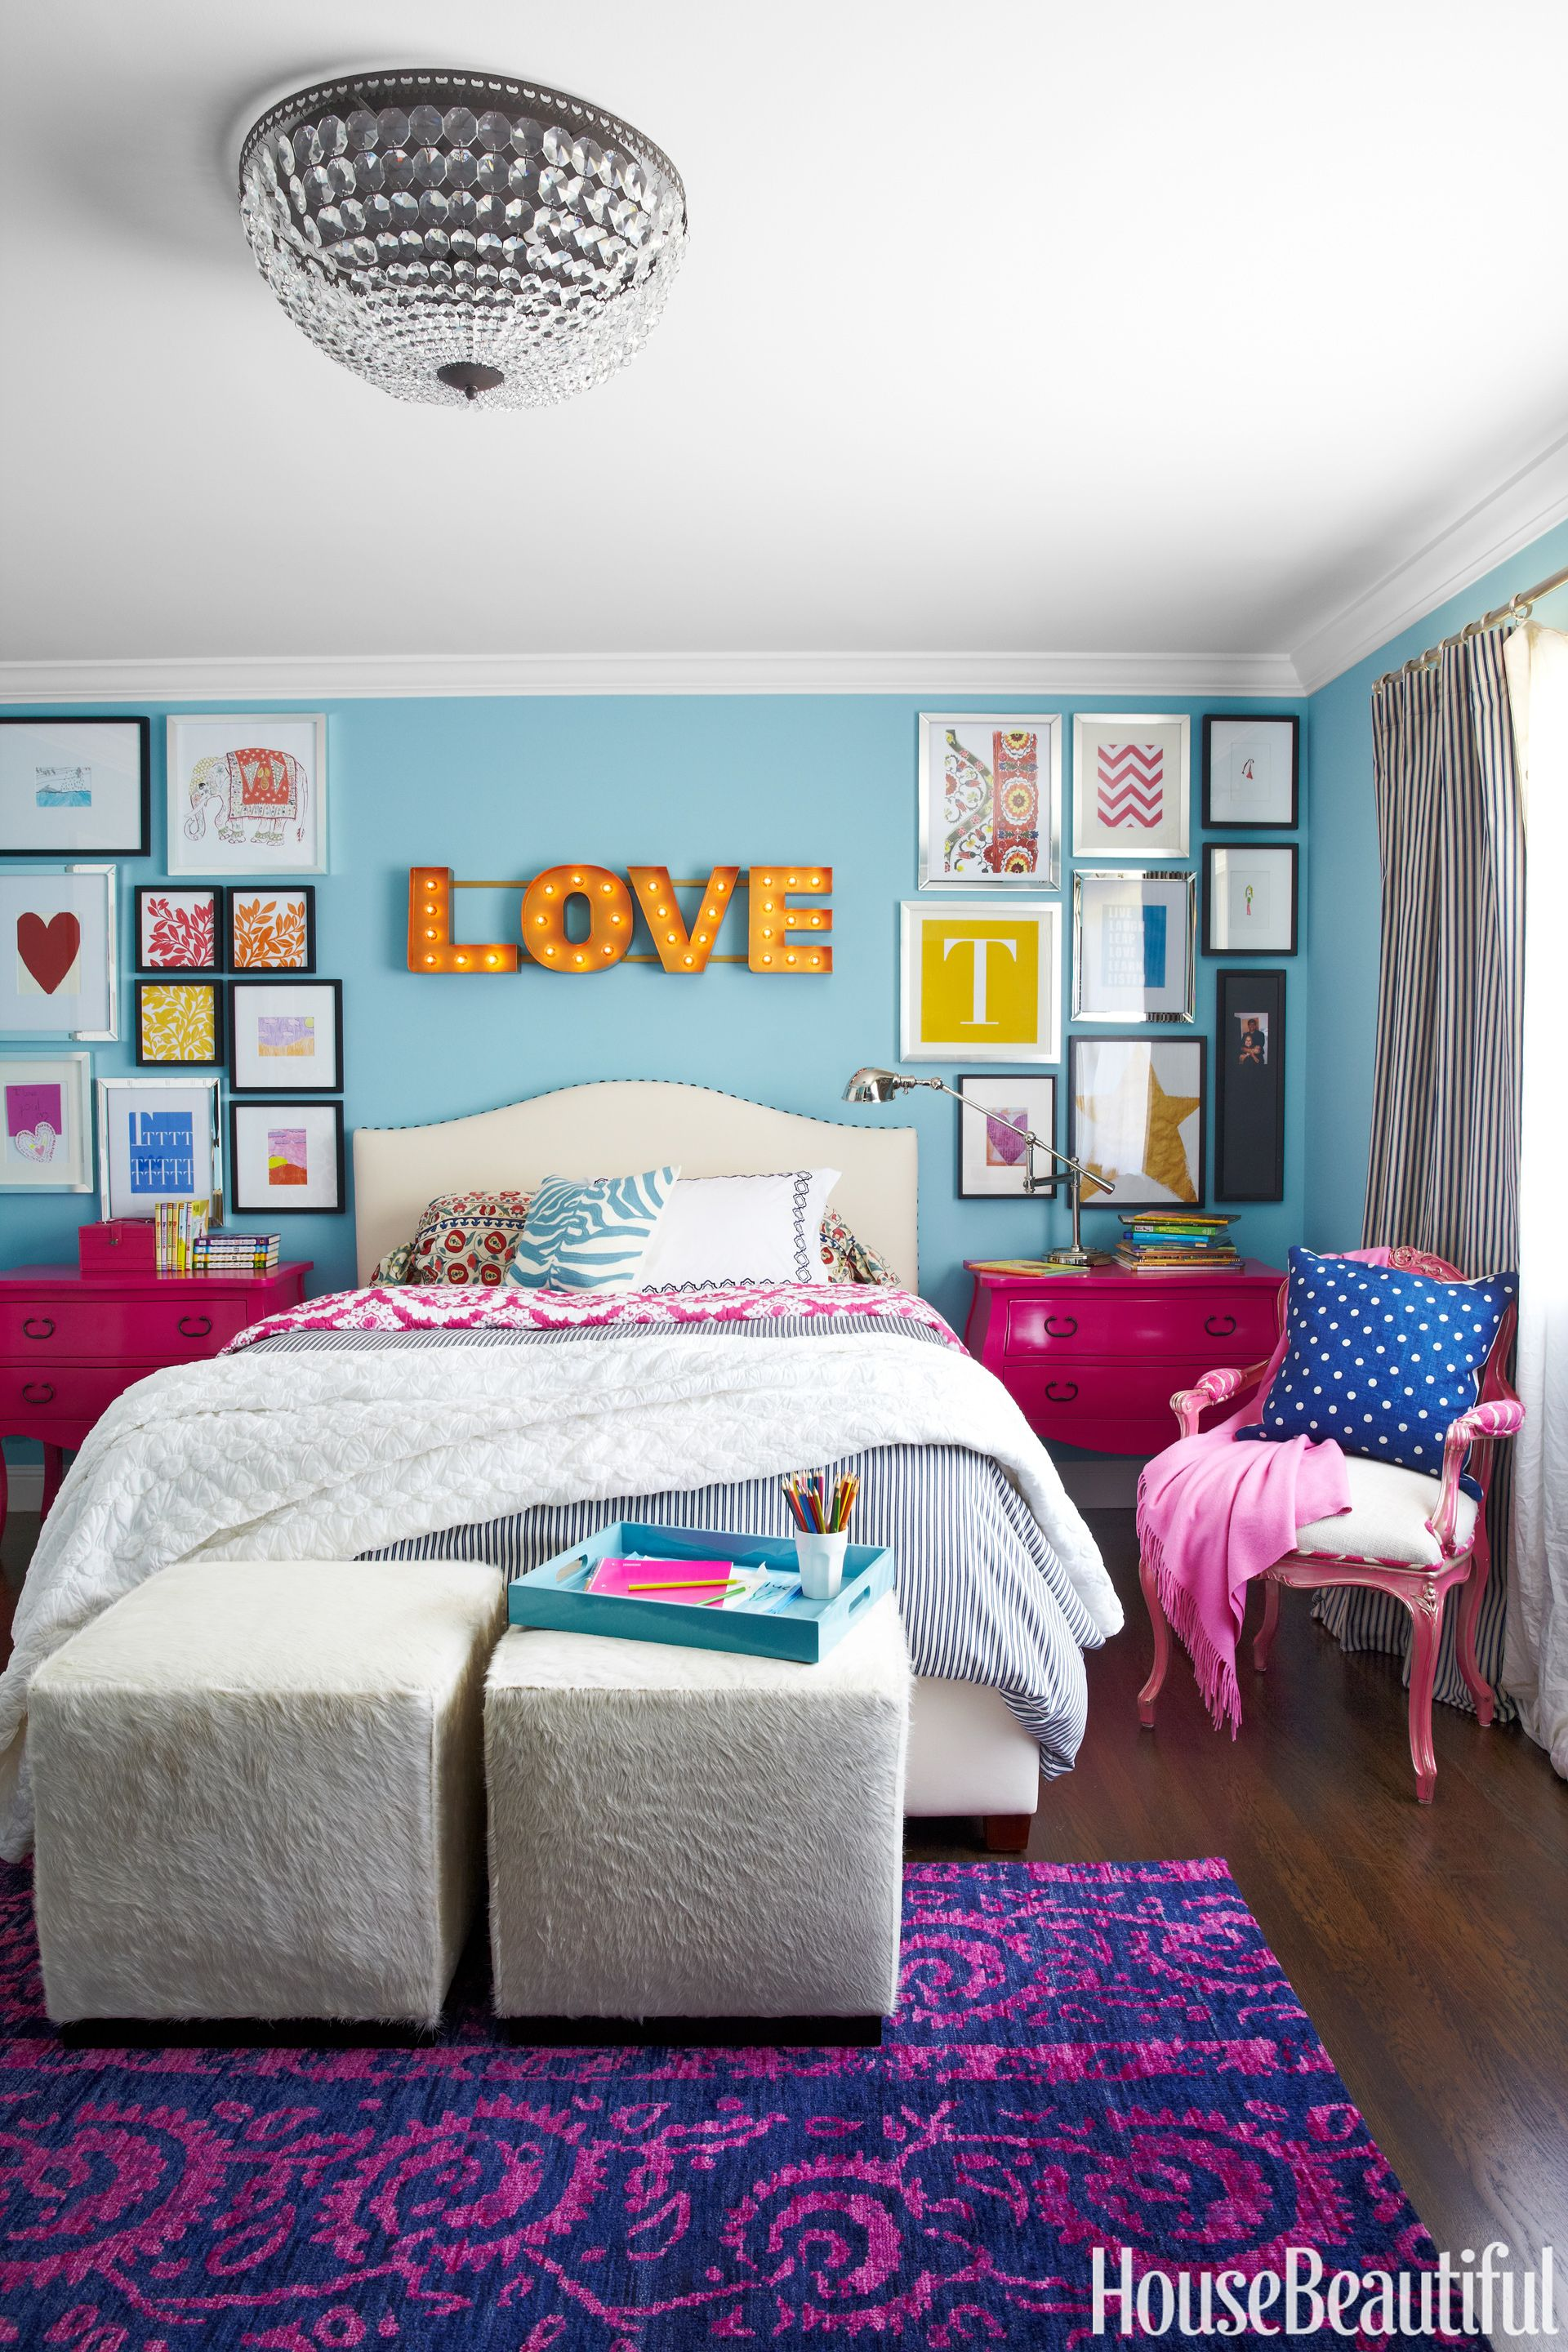 The Best Paint Colors For Your Kidsu0027 Rooms